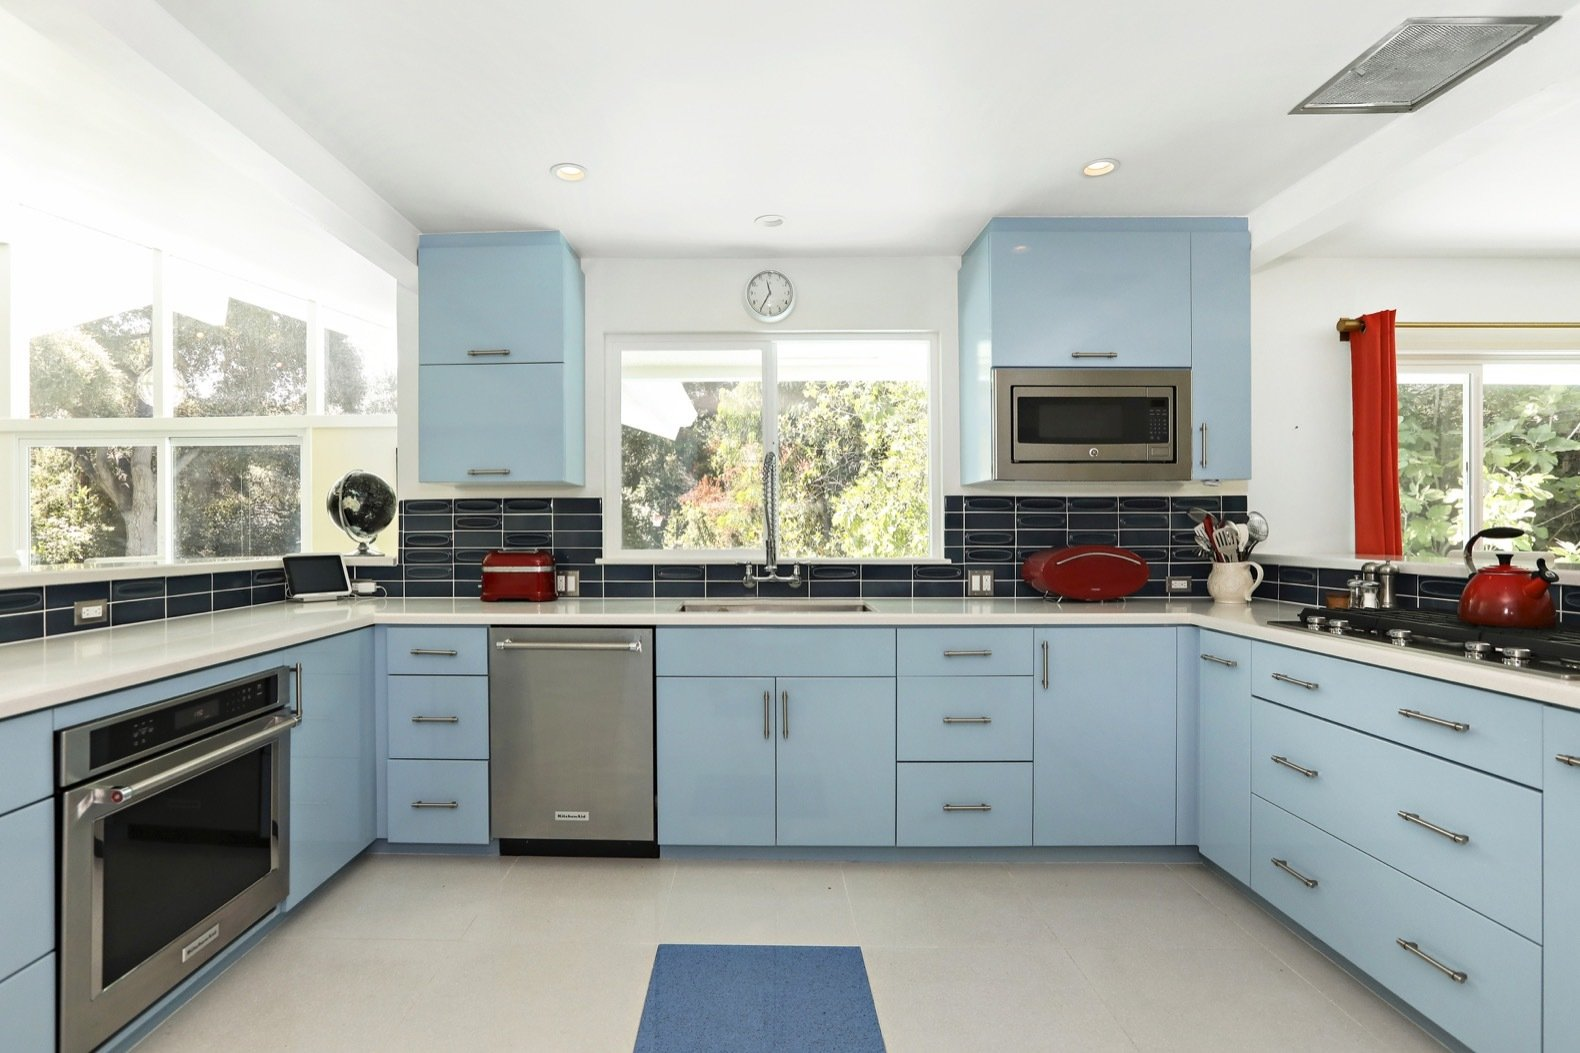 Kitchen, Terrazzo, Wall Oven, Dishwasher, Colorful, Microwave, Cooktops, Drop In, Recessed, Glass Tile, and Engineered Quartz Walls were knocked down to create an open chef's kitchen fitted with retro blue cabinetry complemented by a dark blue tile backsplash.   Best Kitchen Microwave Drop In Glass Tile Photos from Own Comedian Adam Carolla's Renovated L.A. Midcentury For $3.4M